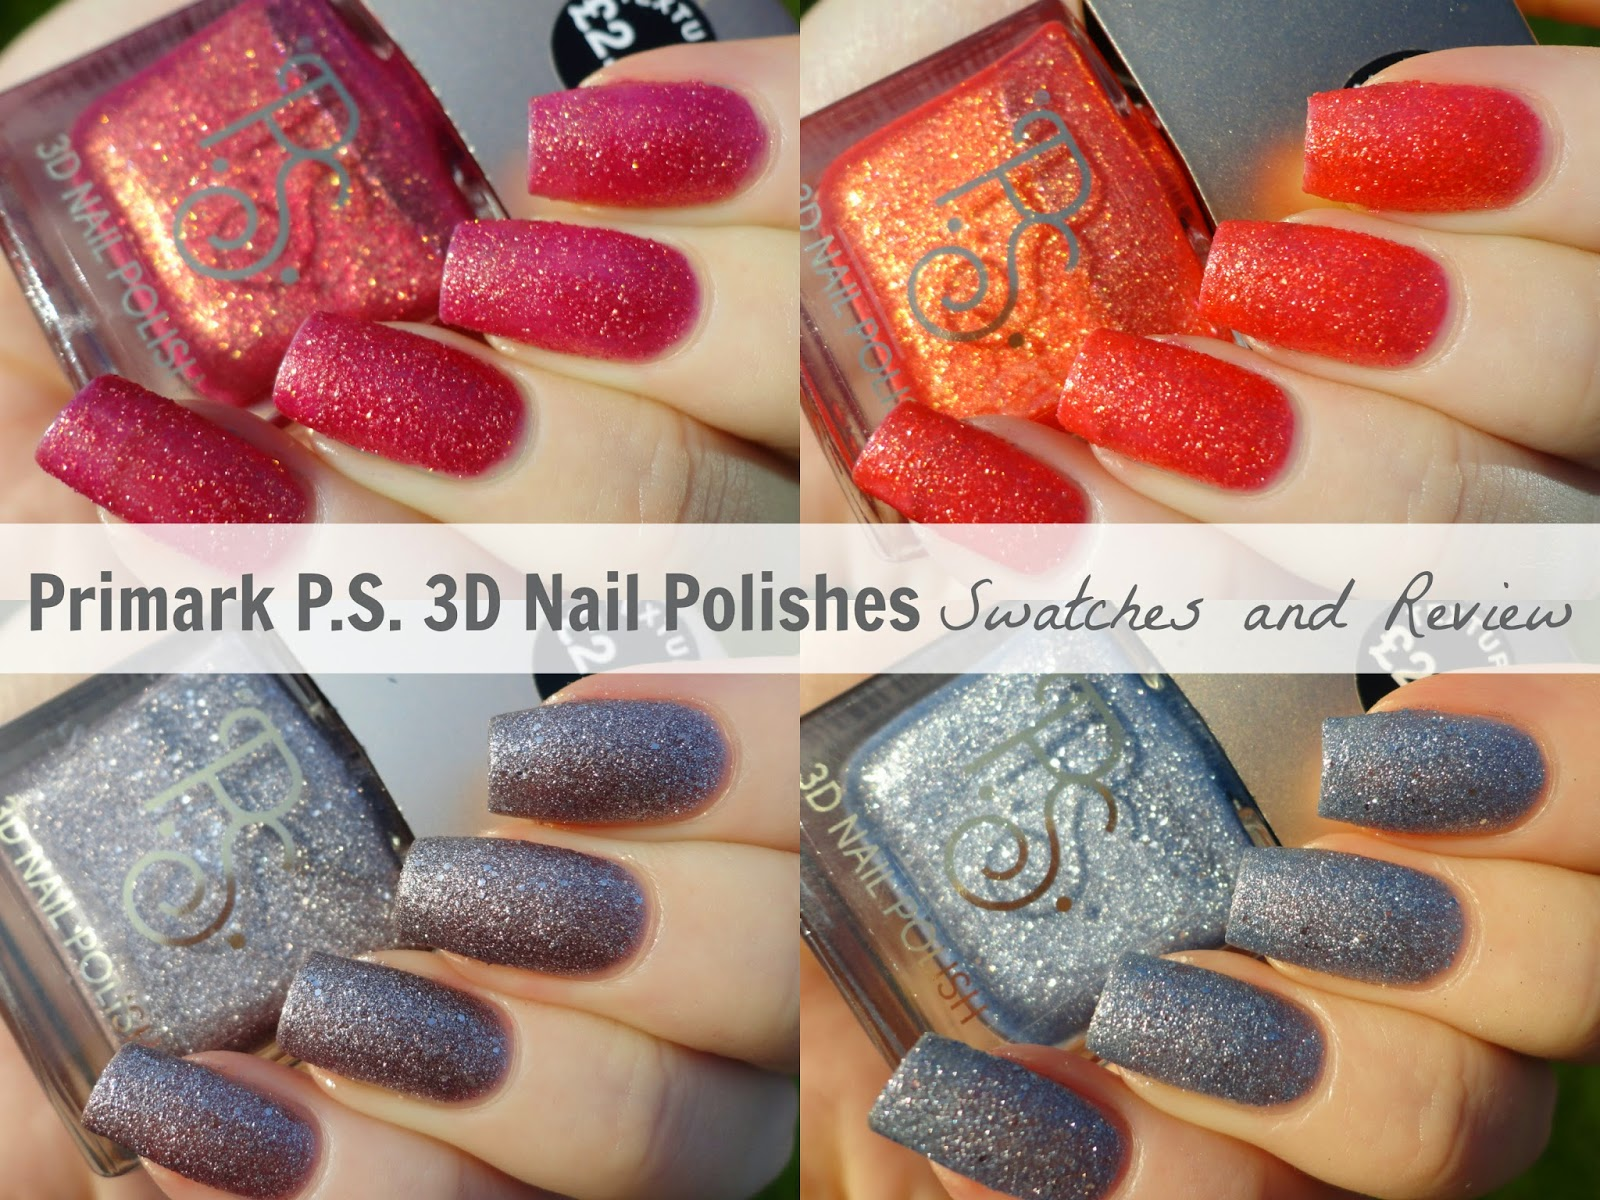 Primark PS 3D Texture Nail Polishes Swatches and Review Red Orange Grey Silver Blue